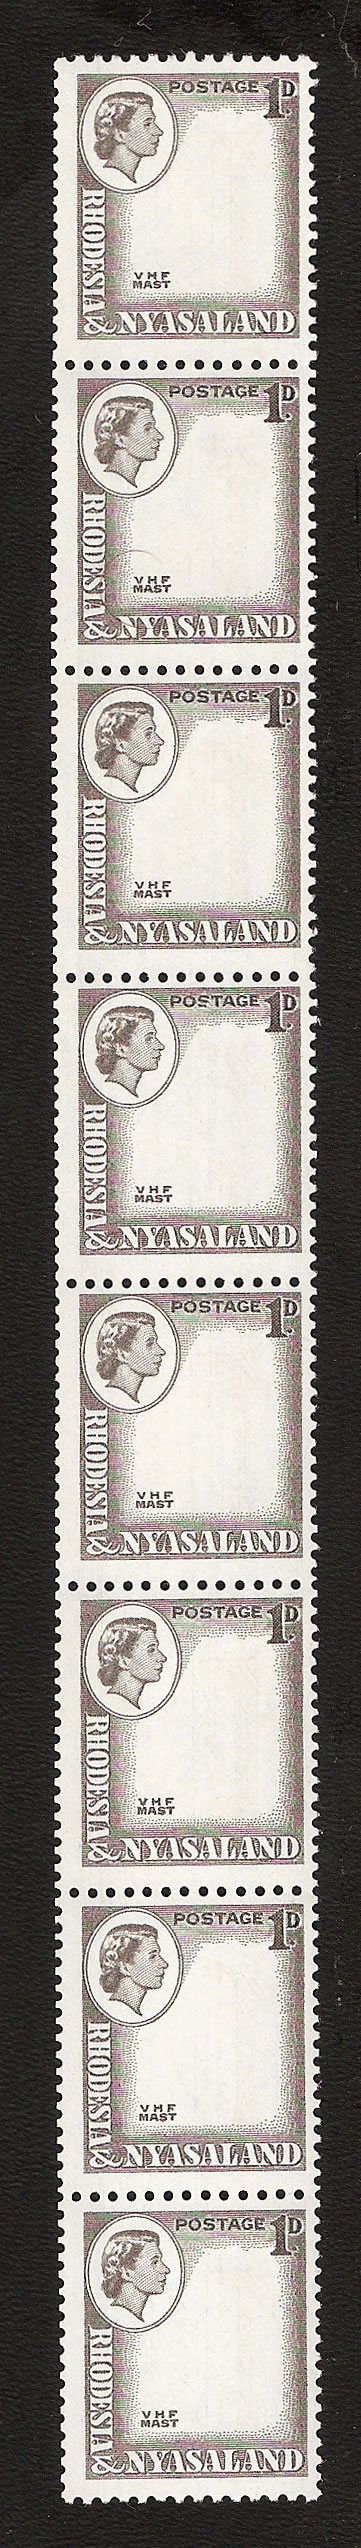 Rhodesia & Nyasaland 1959 1d Carmine (Centre) Omitted Strip